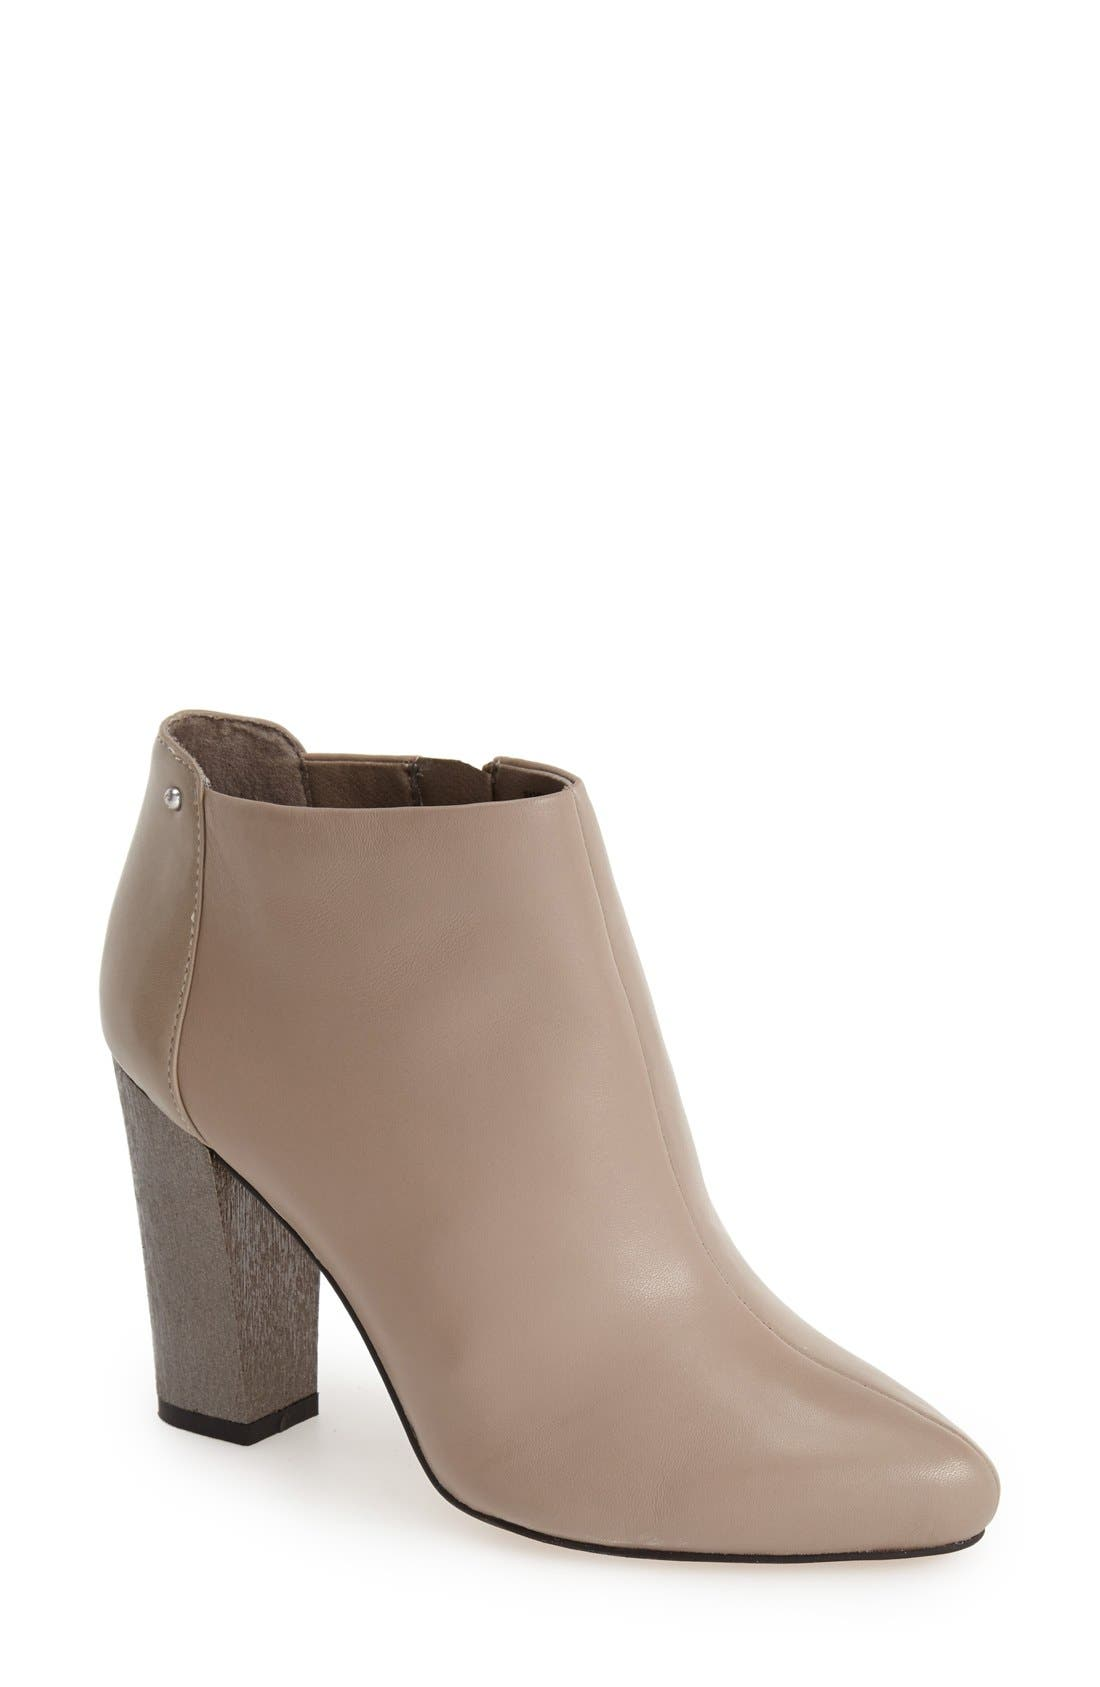 Main Image - Circus by Sam Edelman 'Bond' Bootie (Women)